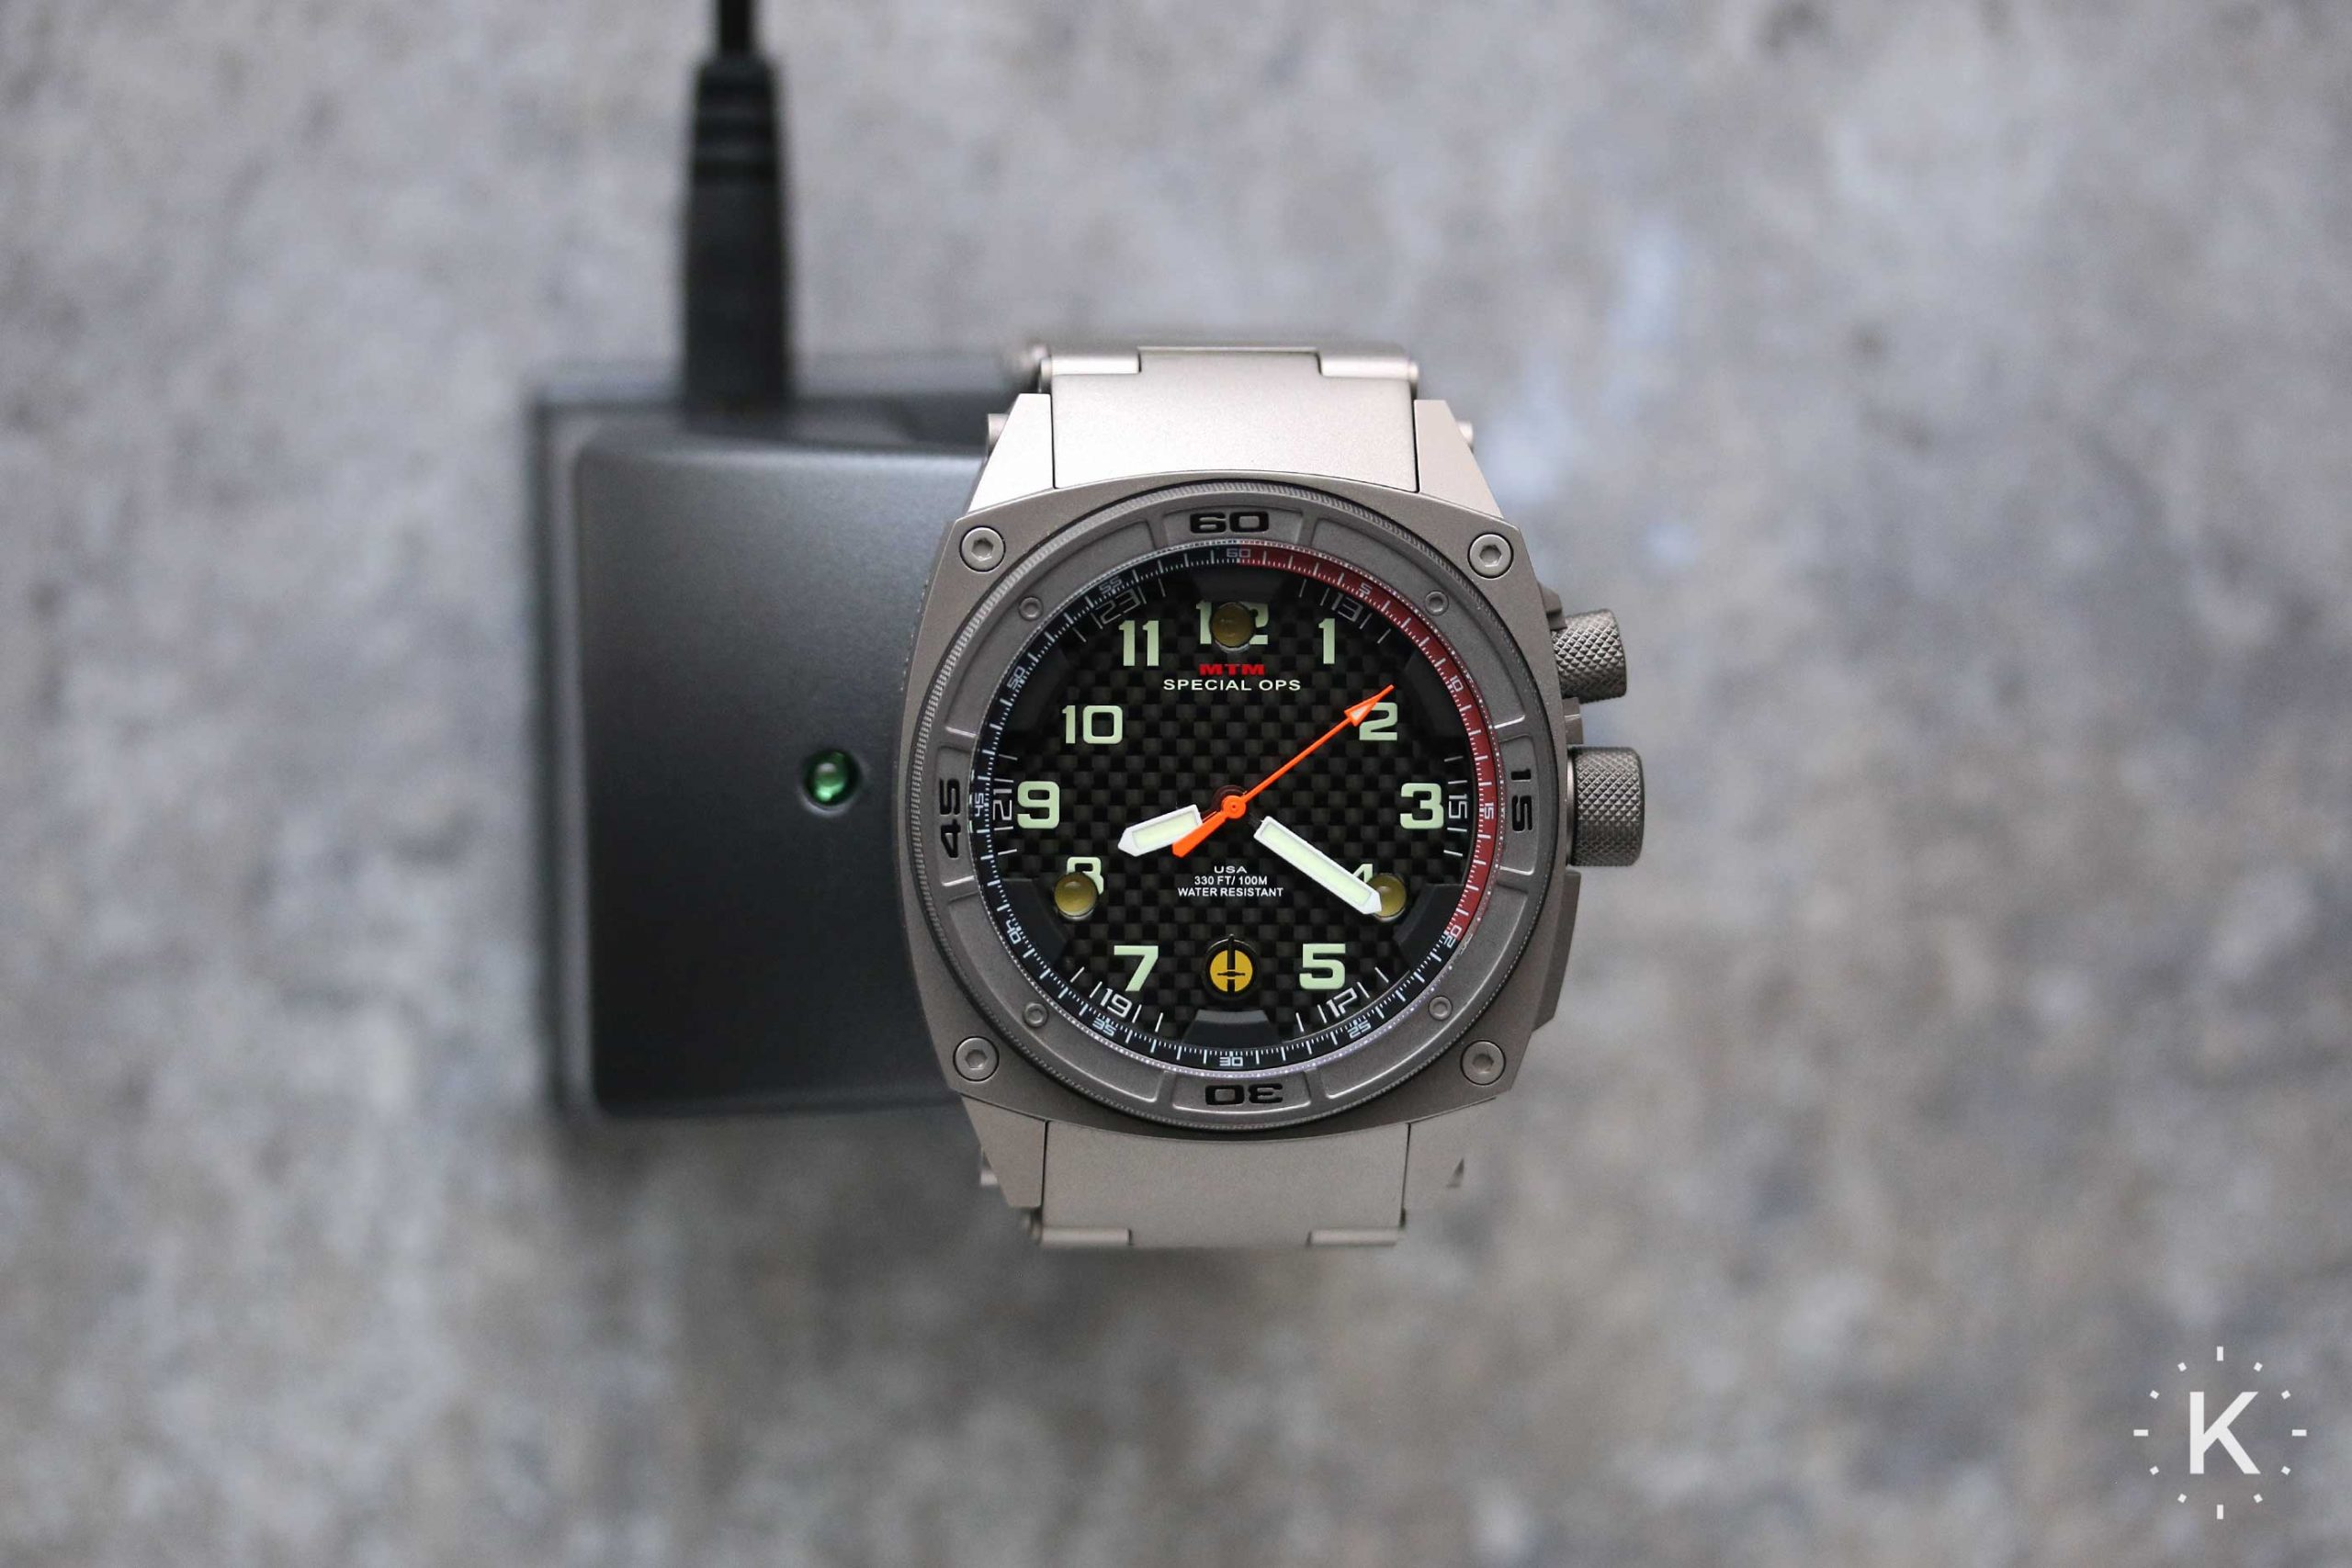 Mtm Special Ops Falcon Watch Charger